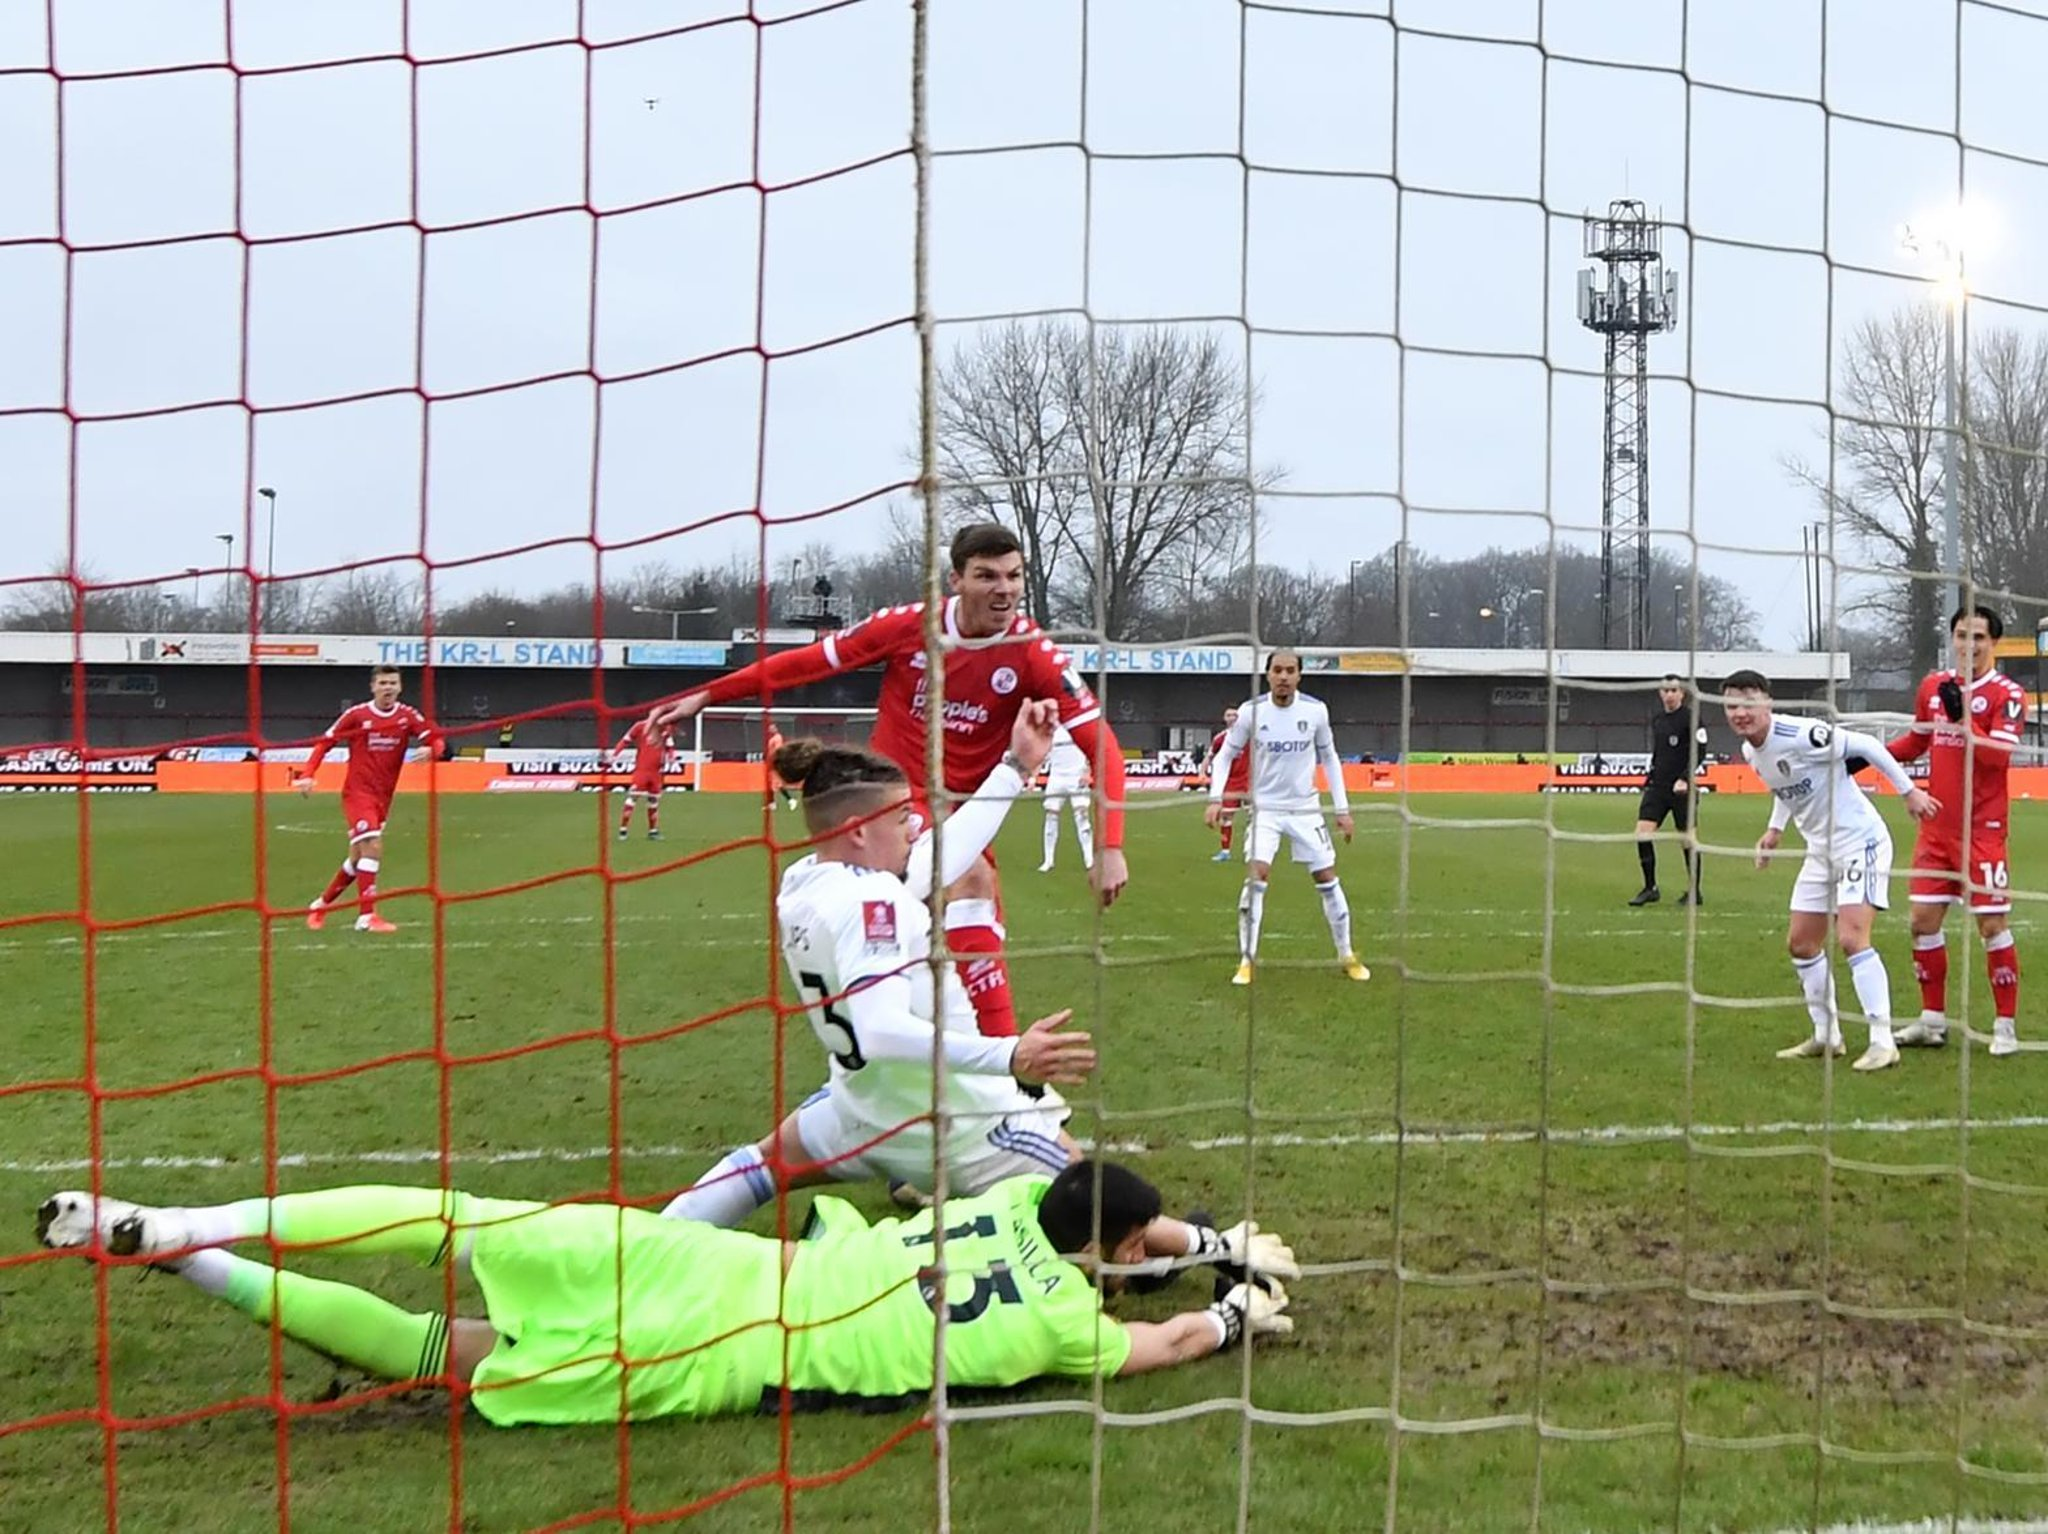 Leeds' FA Cup conquerors Crawley confirm Covid-19 outbreak before fourth round